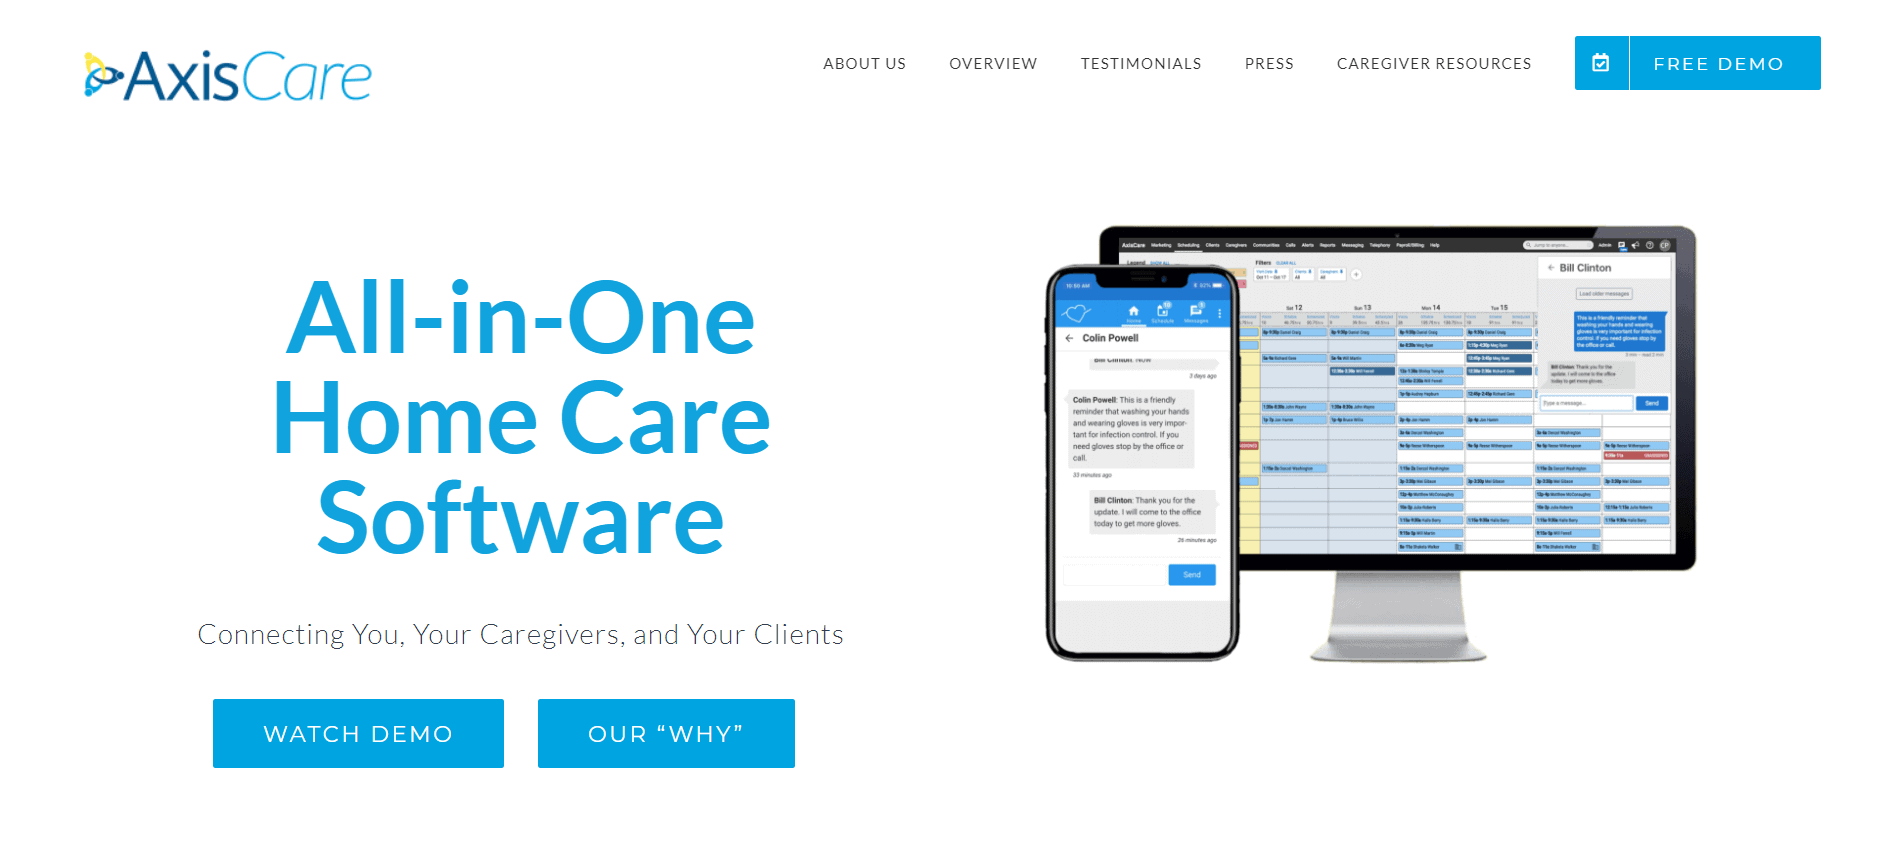 AxisCare